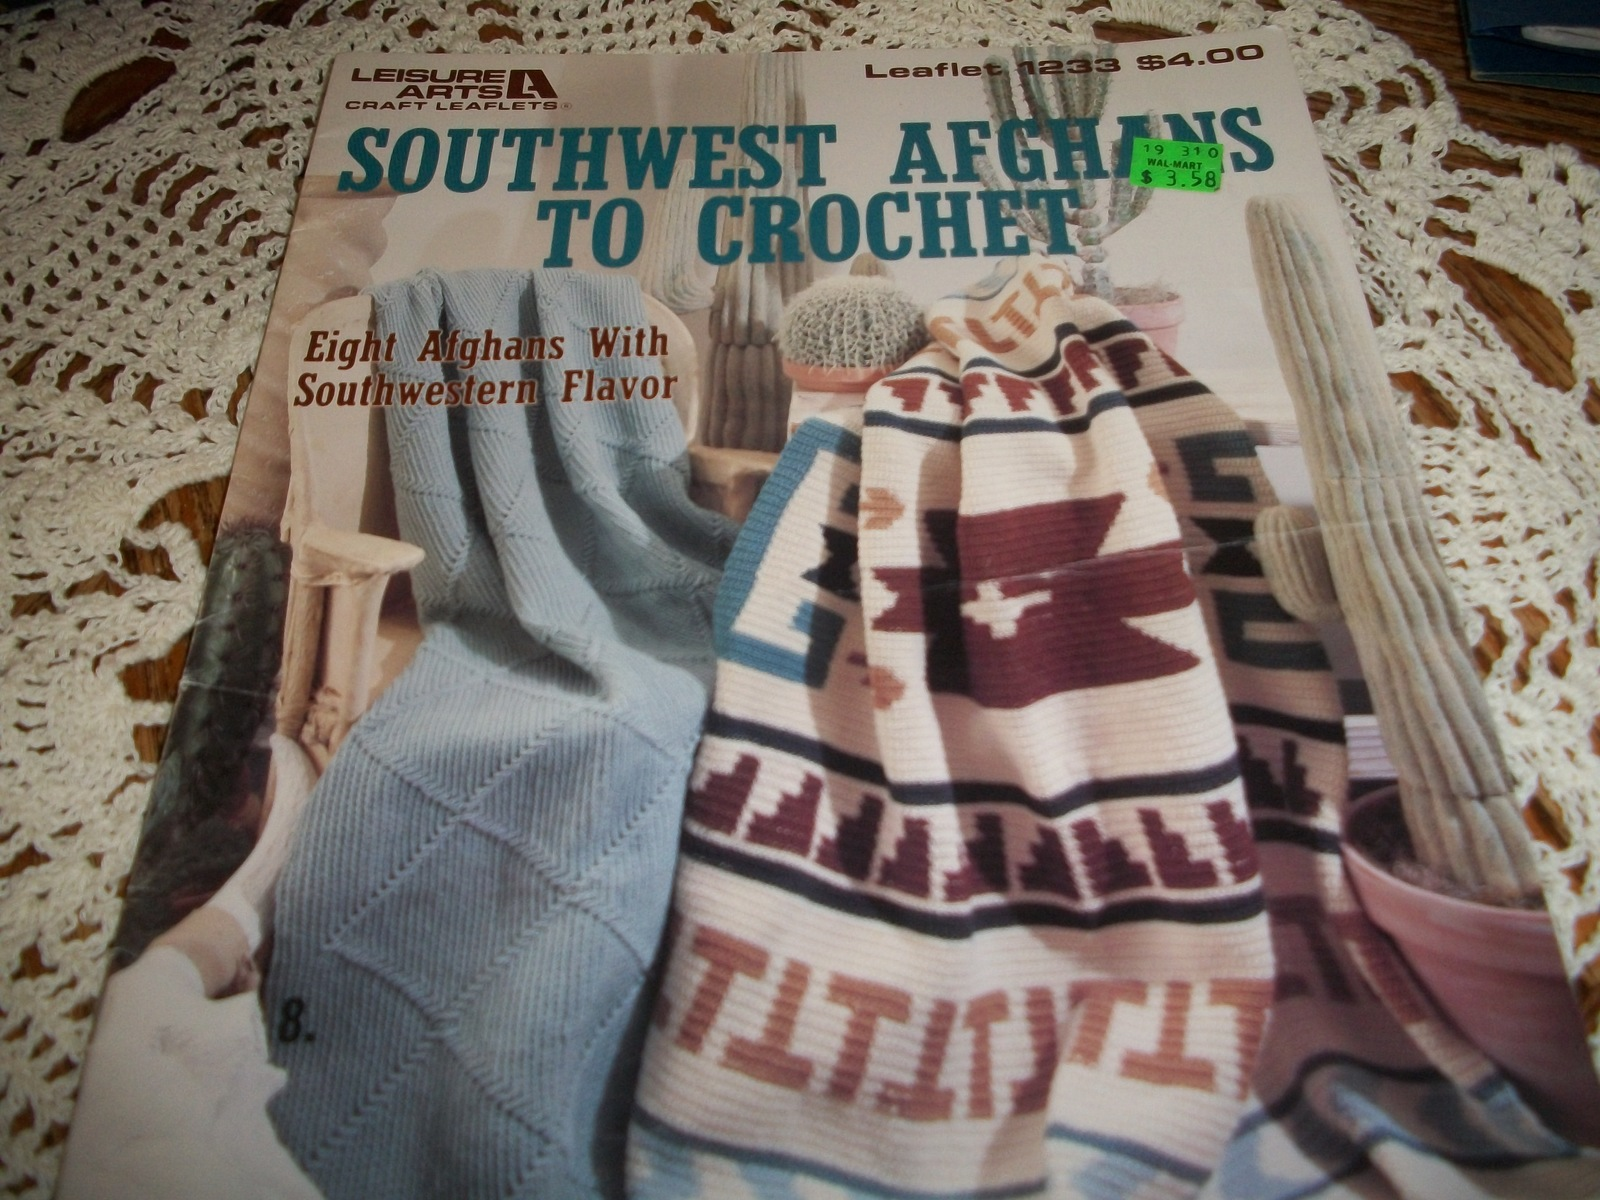 Primary image for Southwest Afghans To Crochet Leaflet 1233